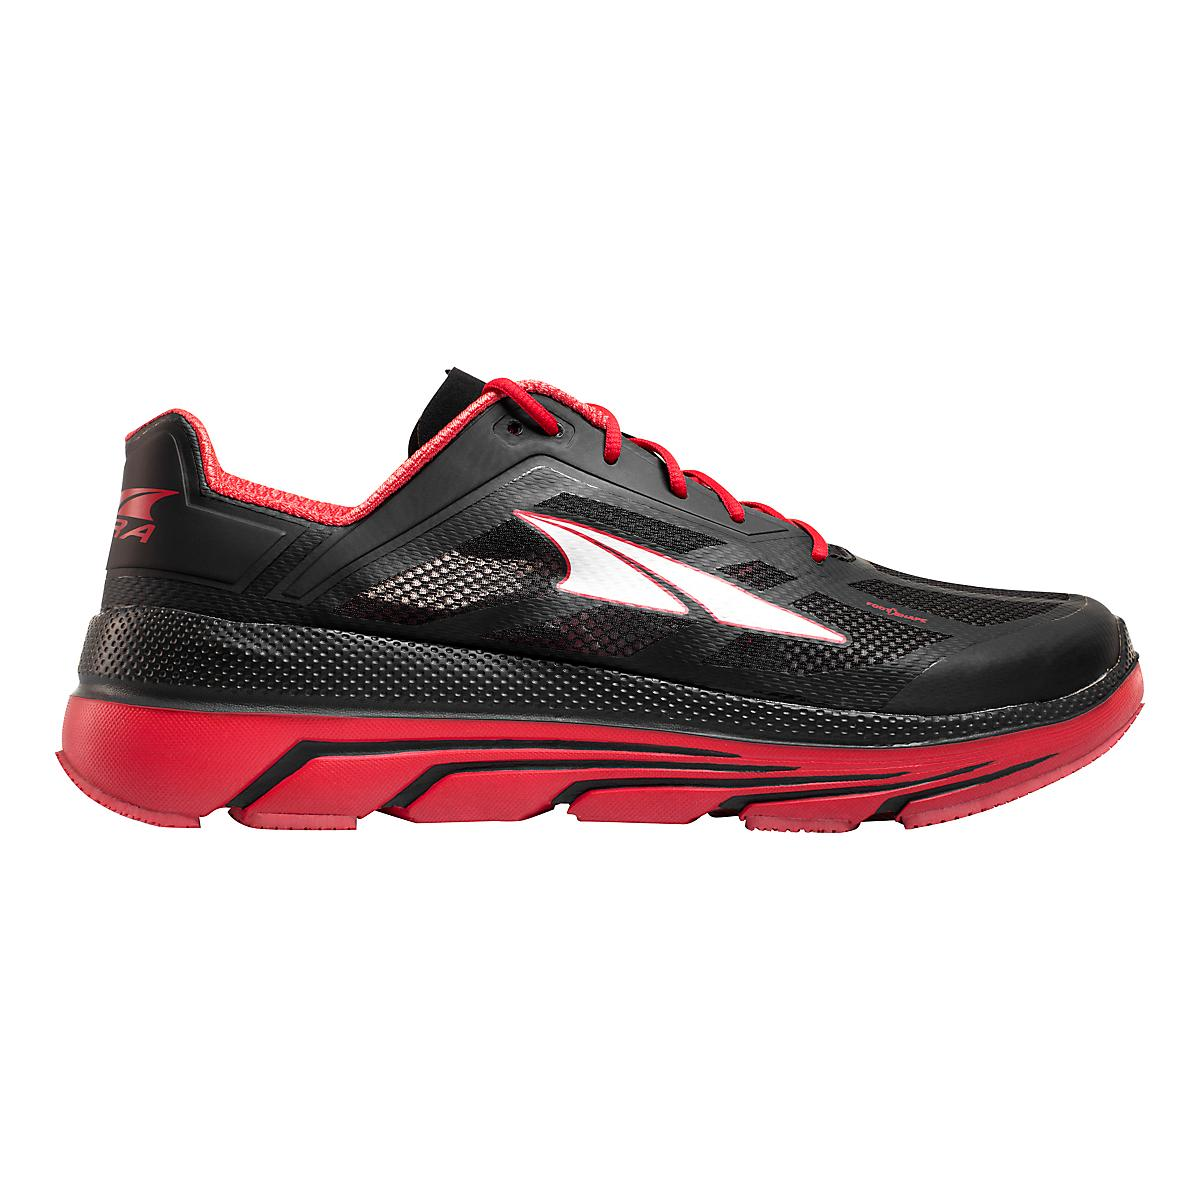 0a1aa84796f Mens Altra Duo Running Shoe at Road Runner Sports